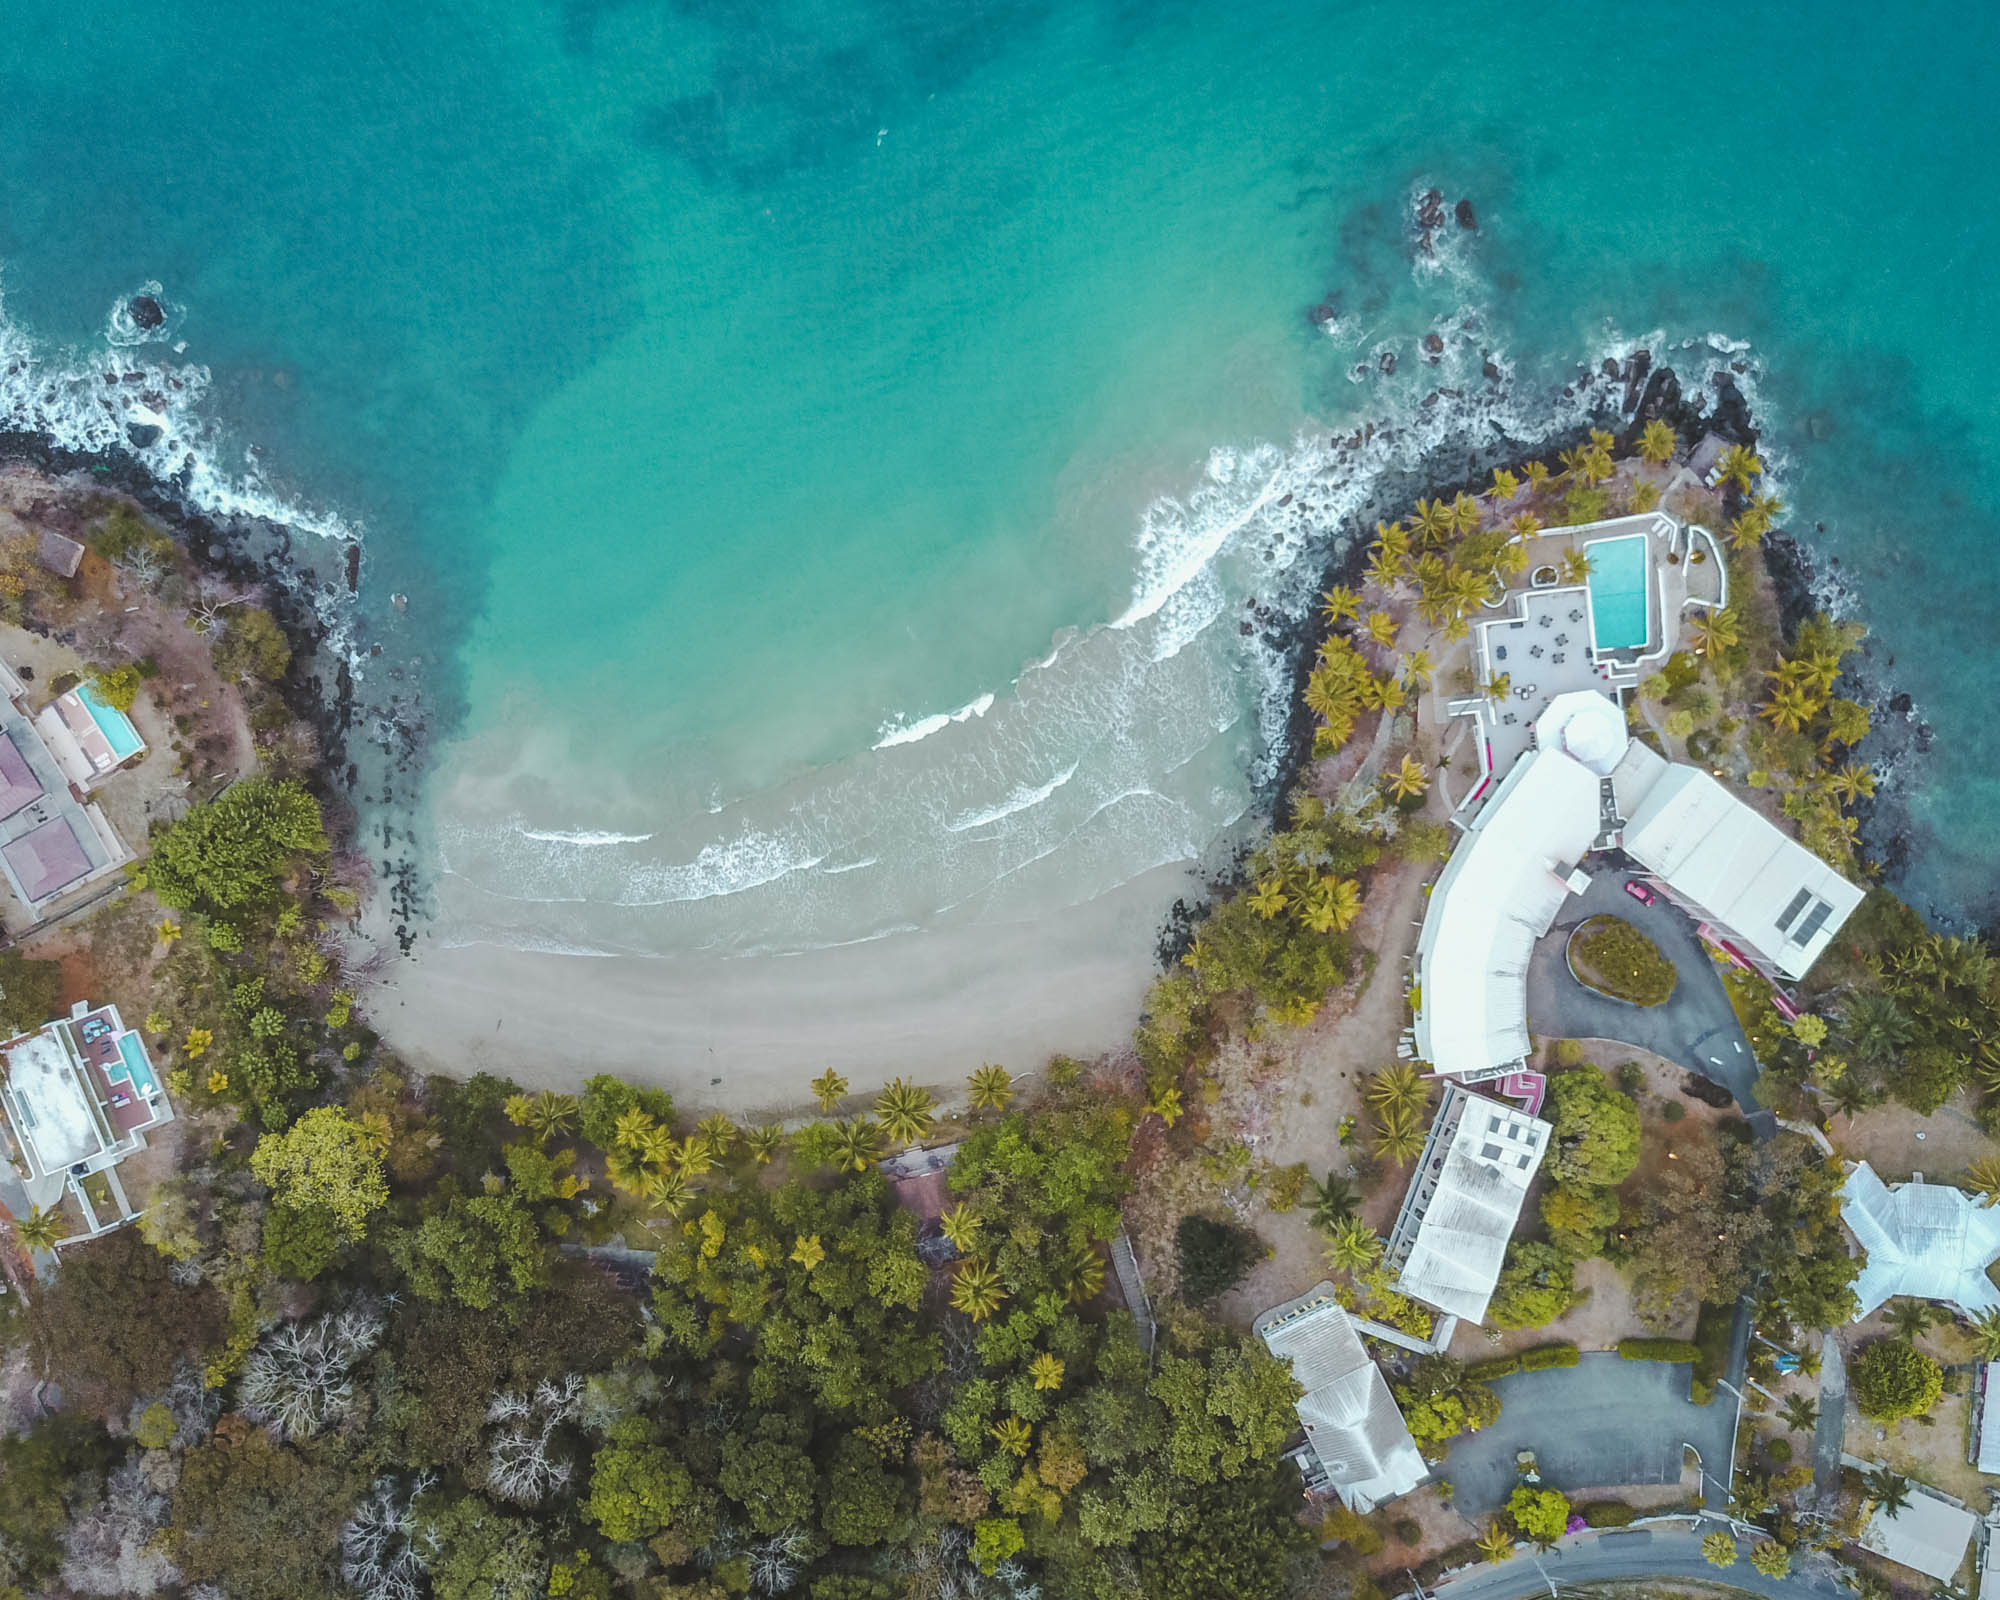 Trinidad and Tobago drone shot over buildings and cove